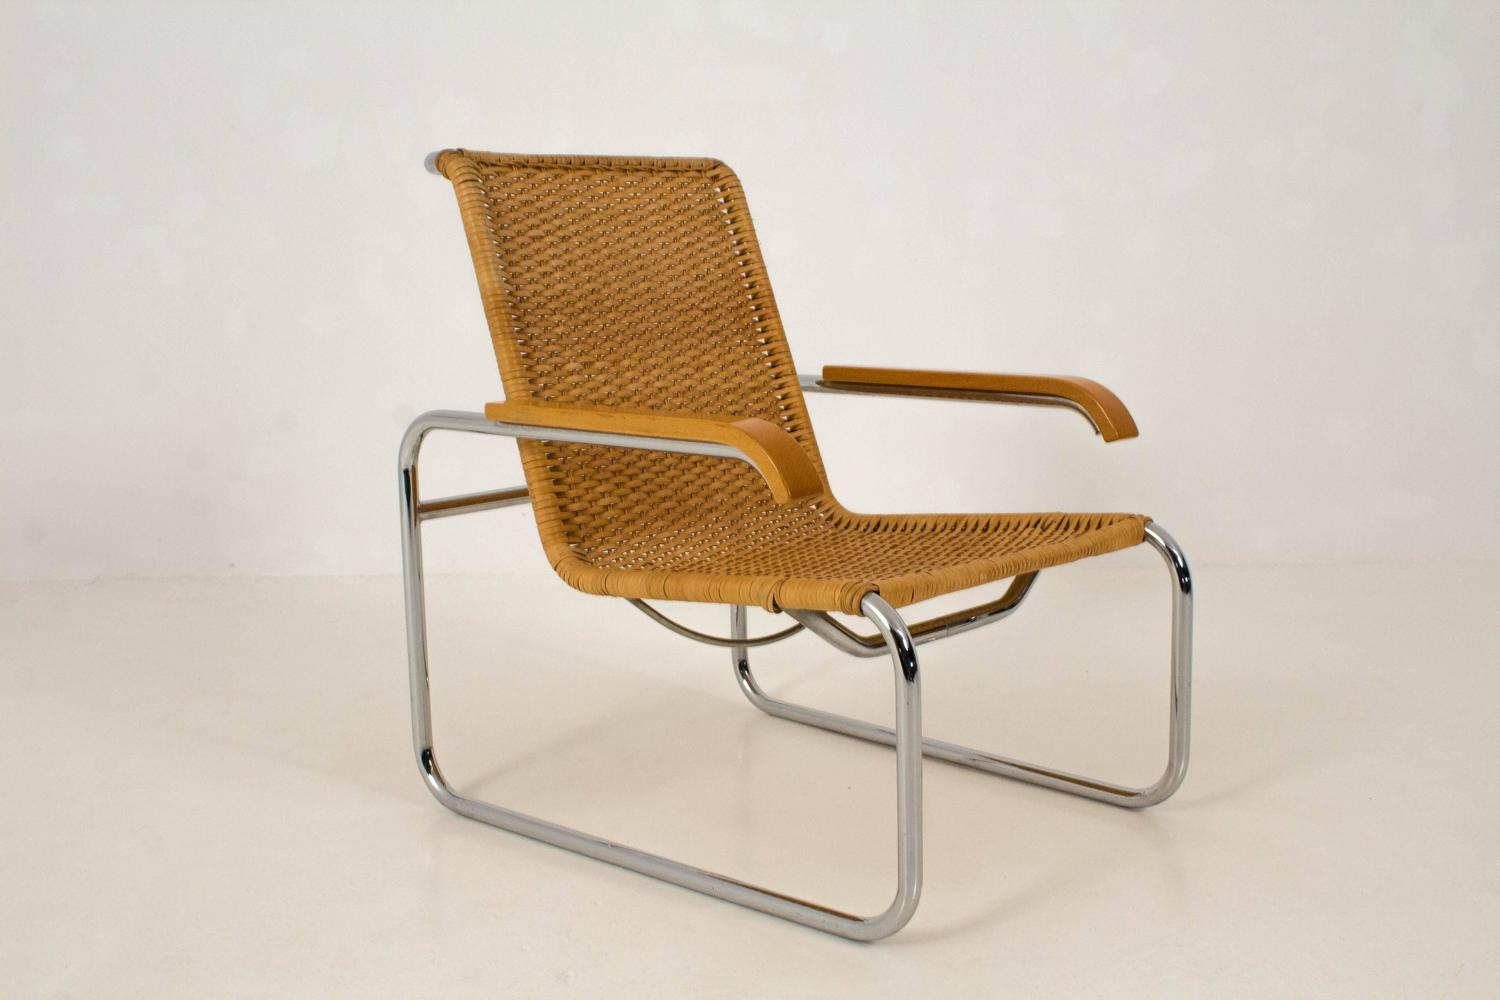 breuer chairs for sale antique wooden birthing chair b 35 lounge by marcel thonet 1970s